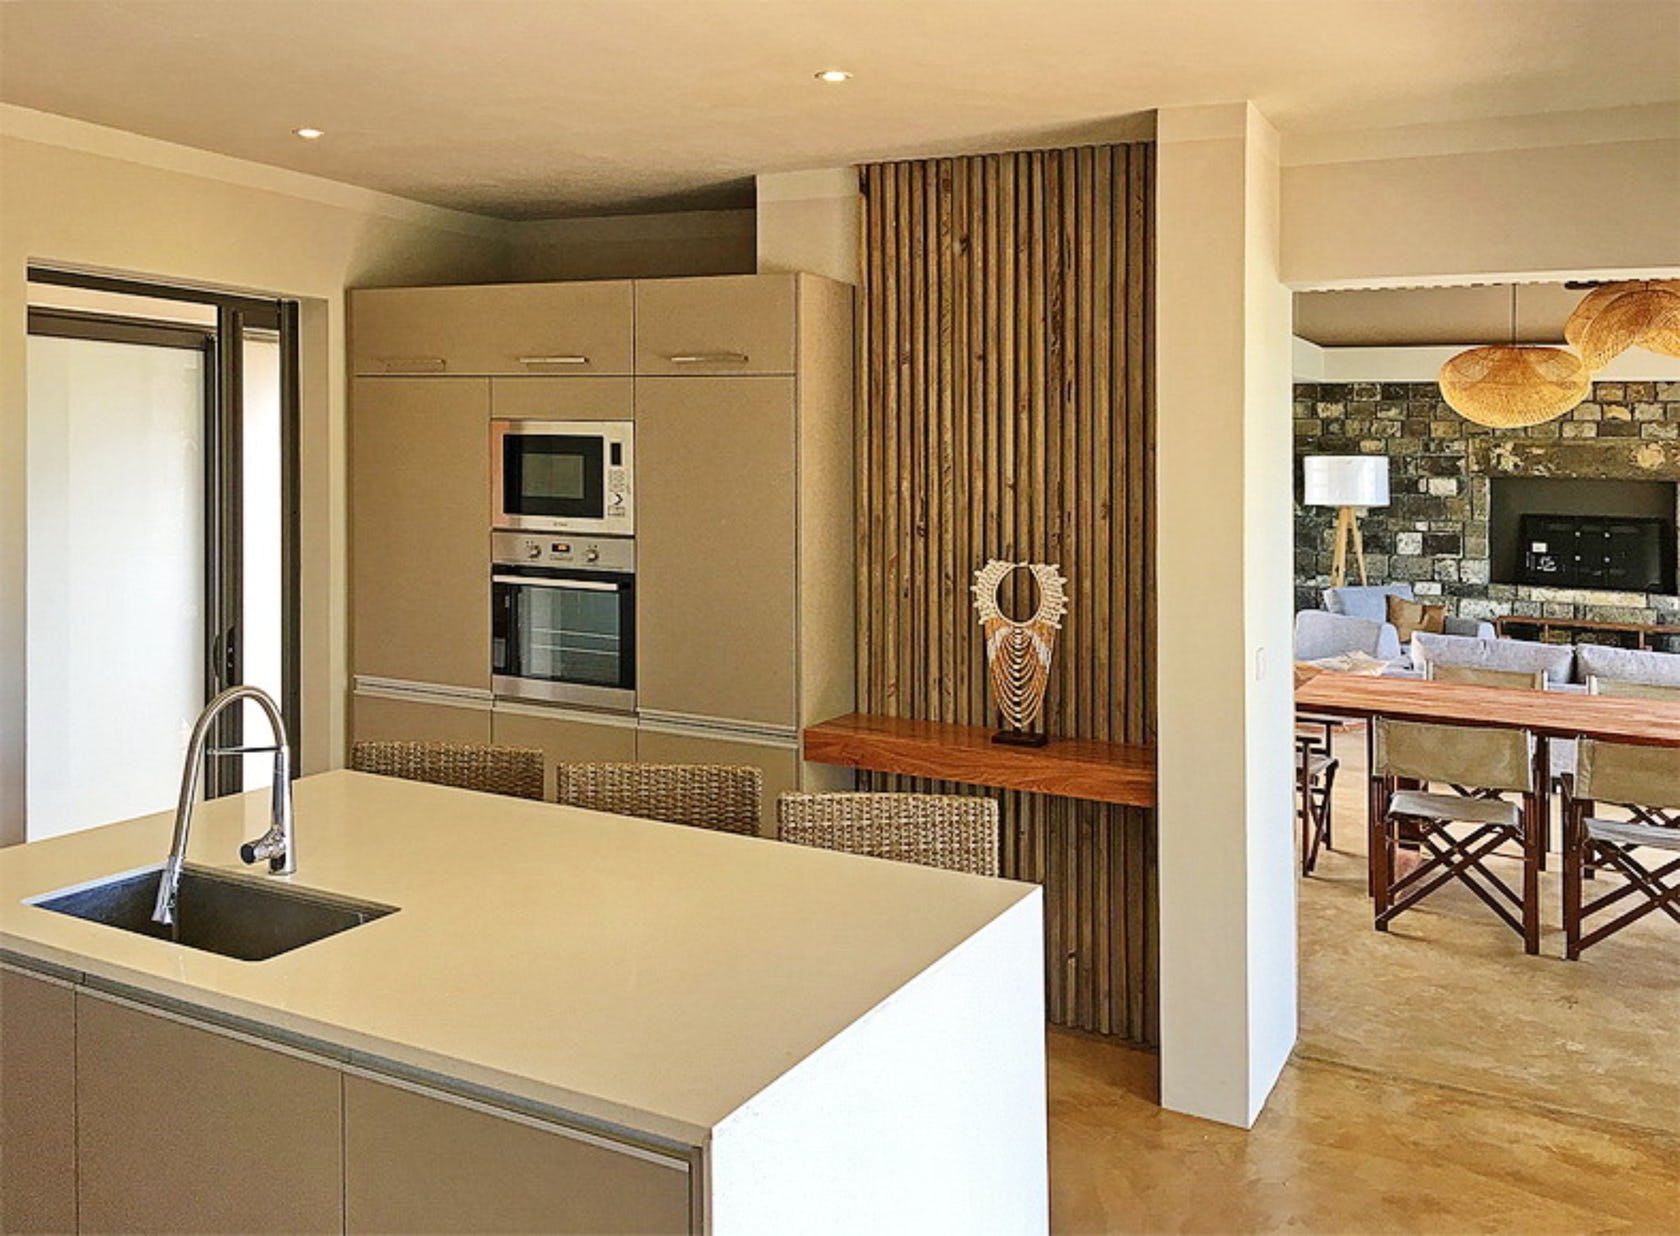 indoors room kitchen wood microwave appliance oven